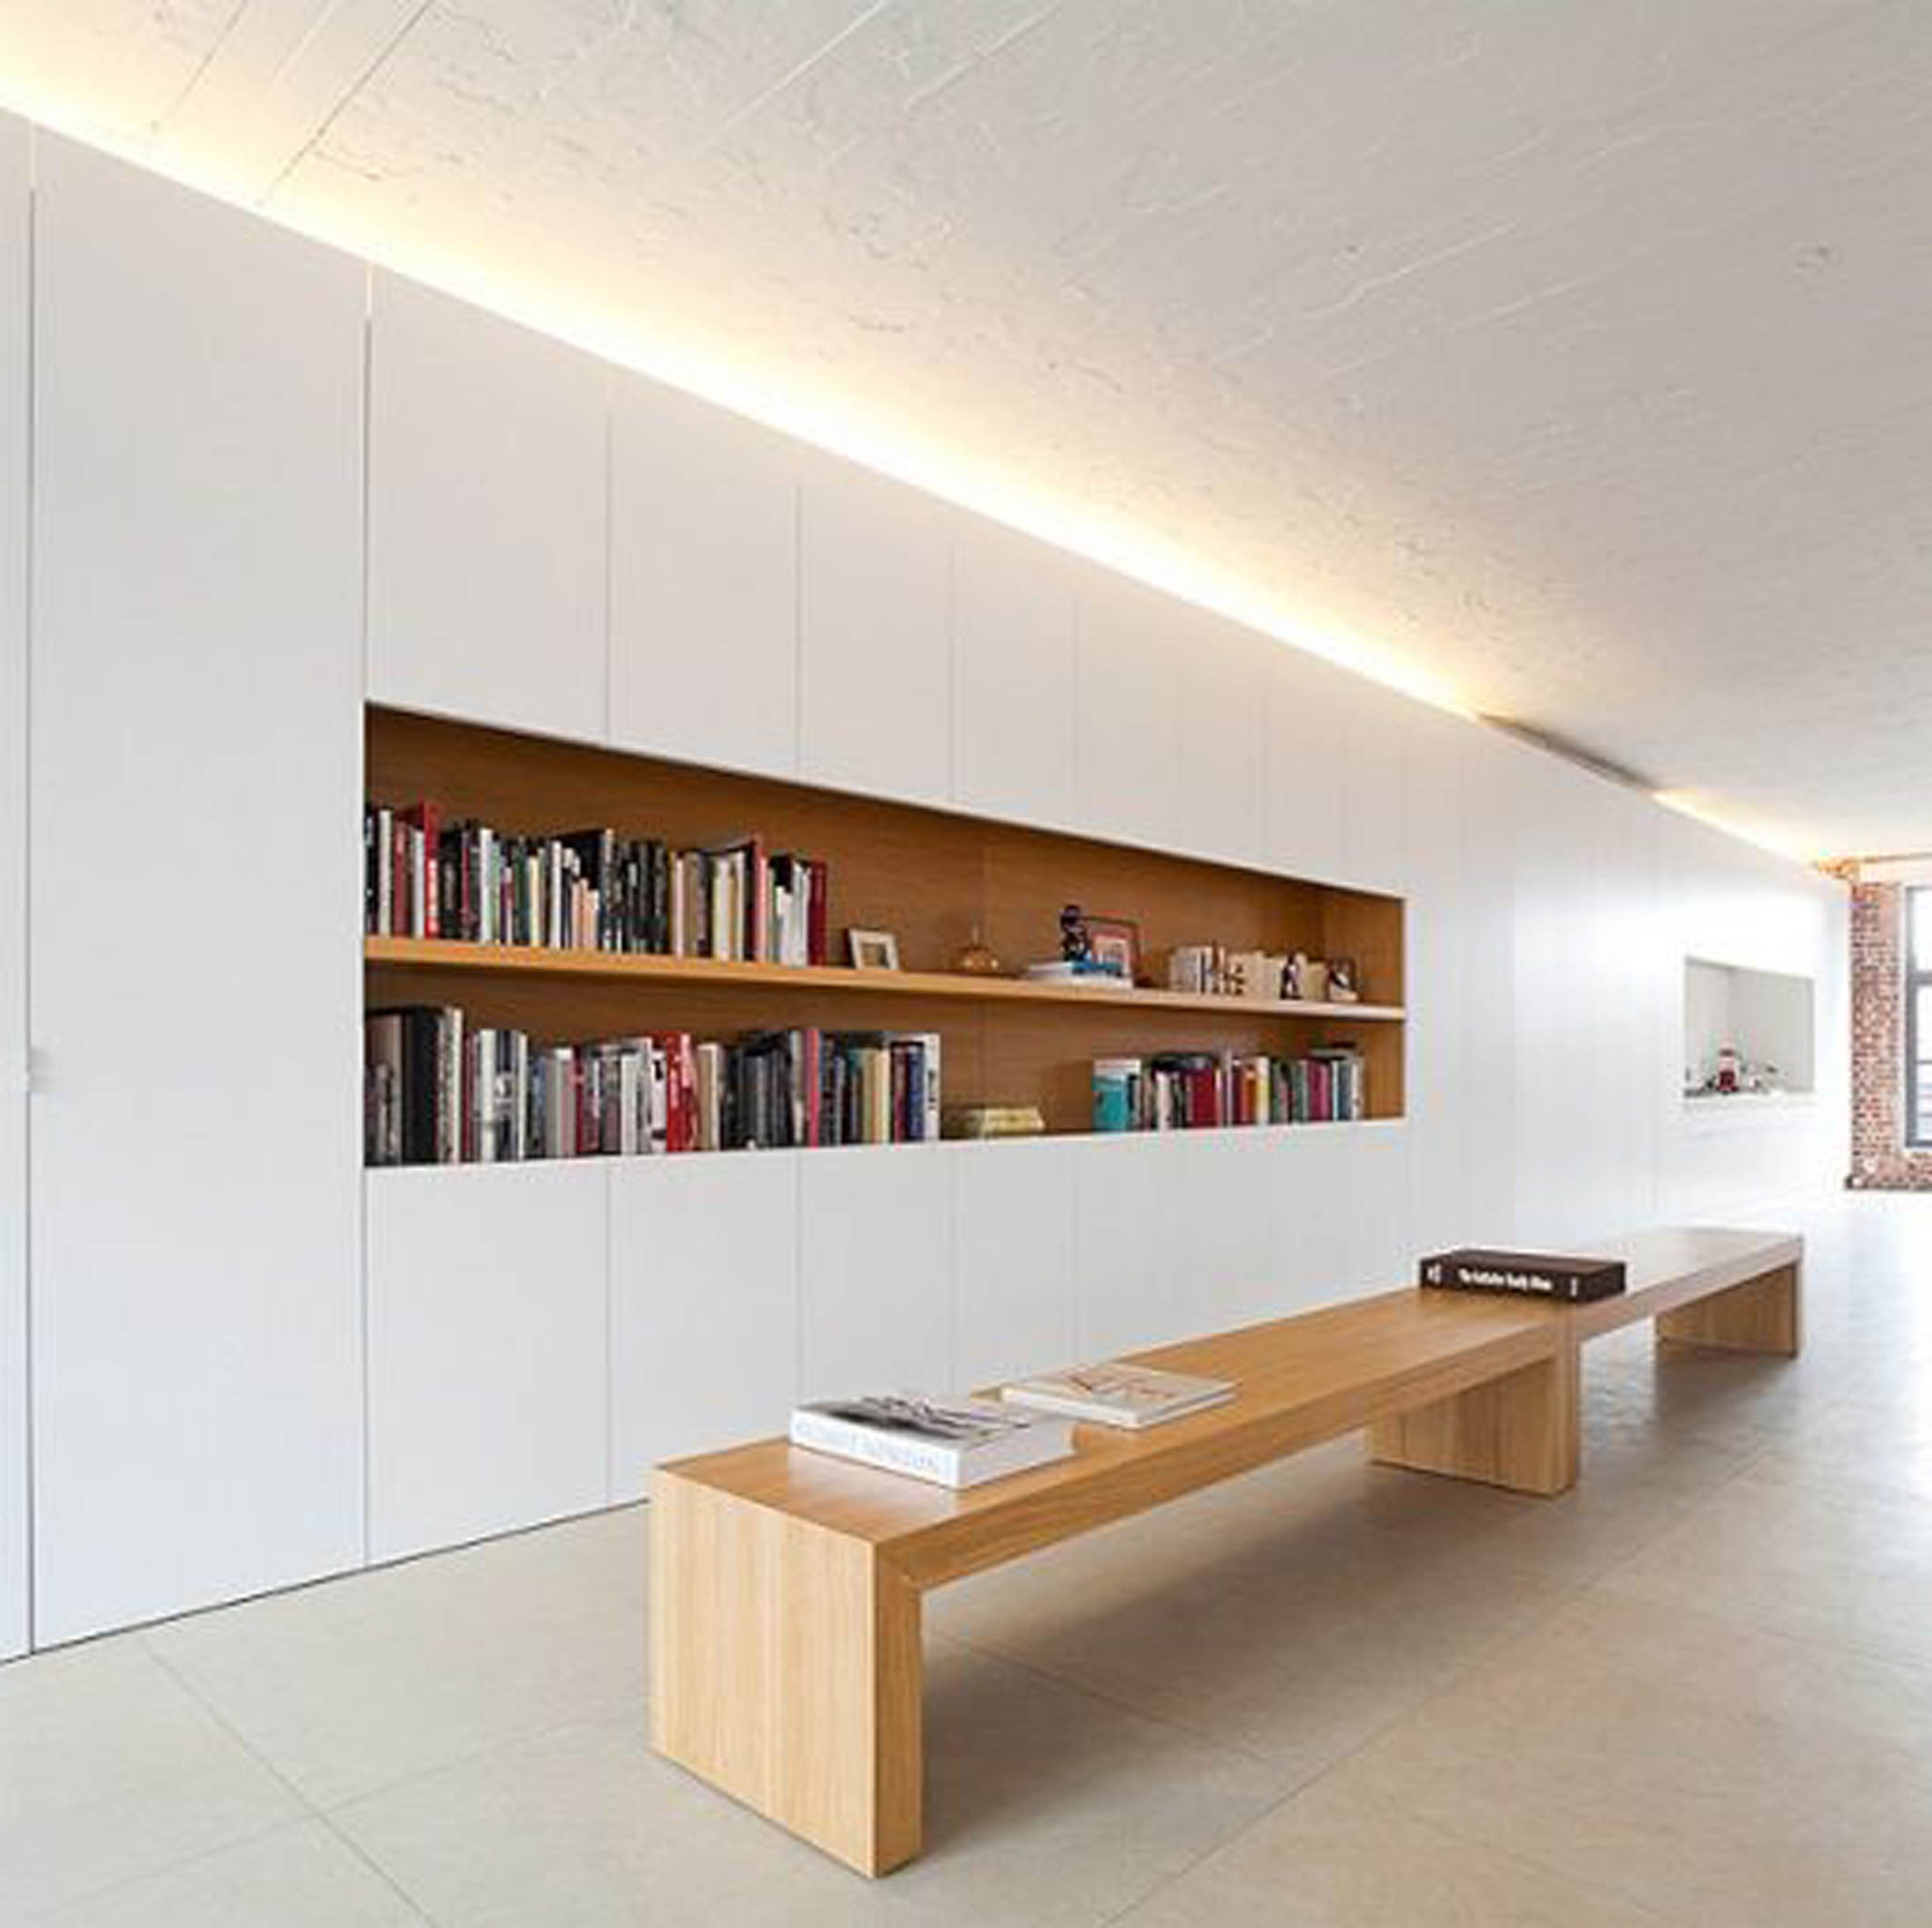 Clever storage in typical modern design streamlines our homes and our lives. Image Credit: arhitekturaplus.com